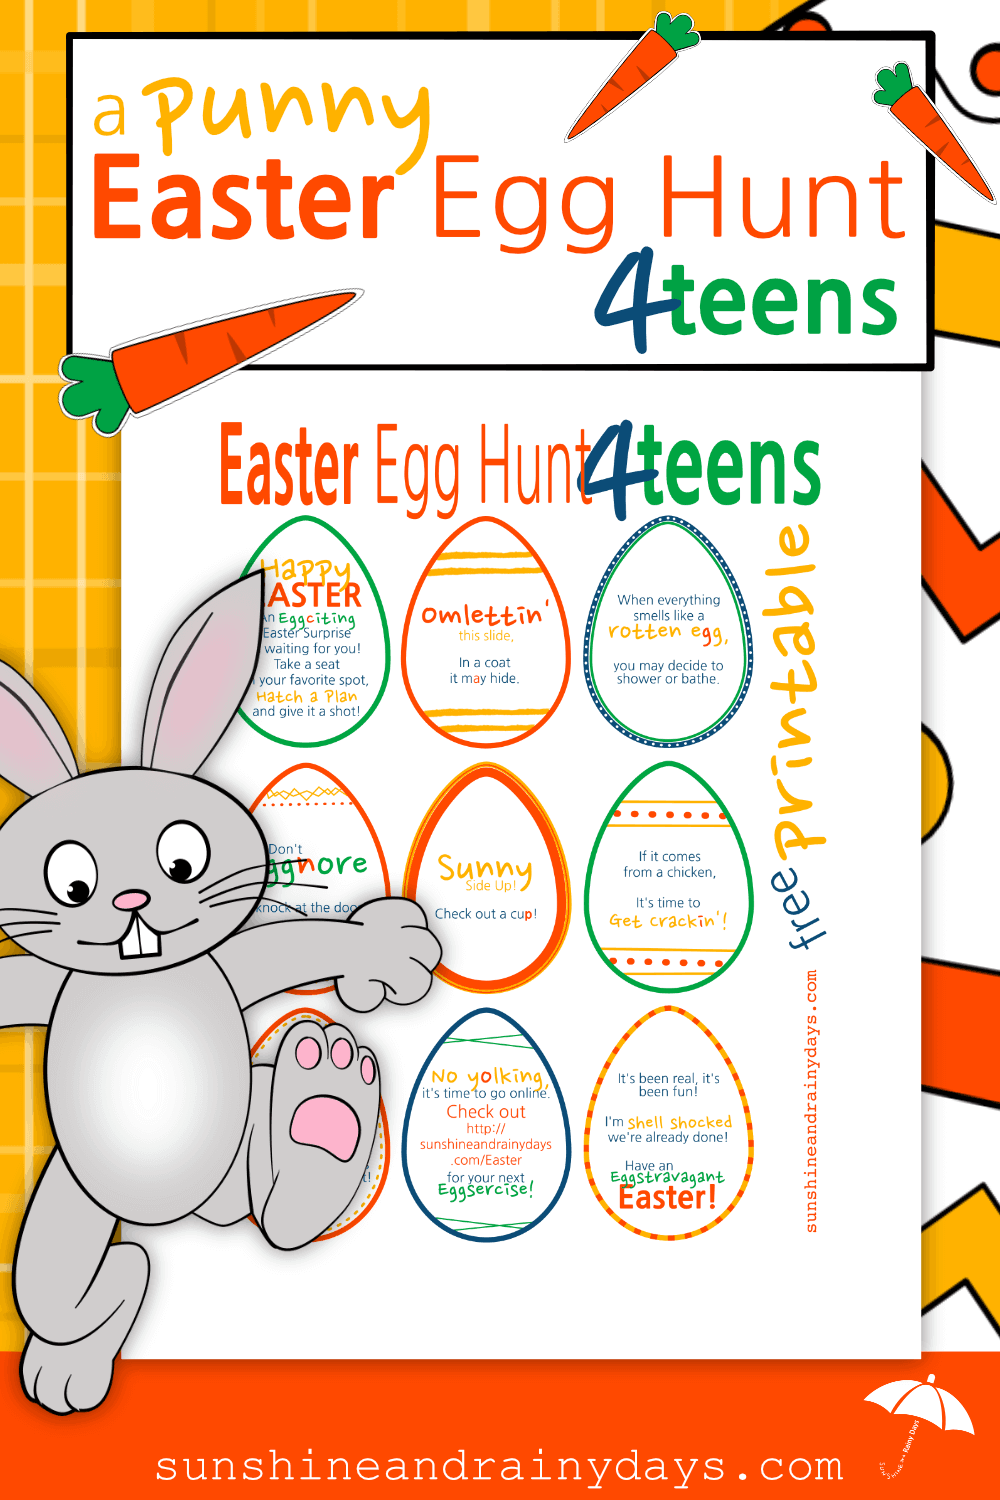 Use these Punny Easter Eggs for a FUN Easter Egg Hunt for Teenagers!